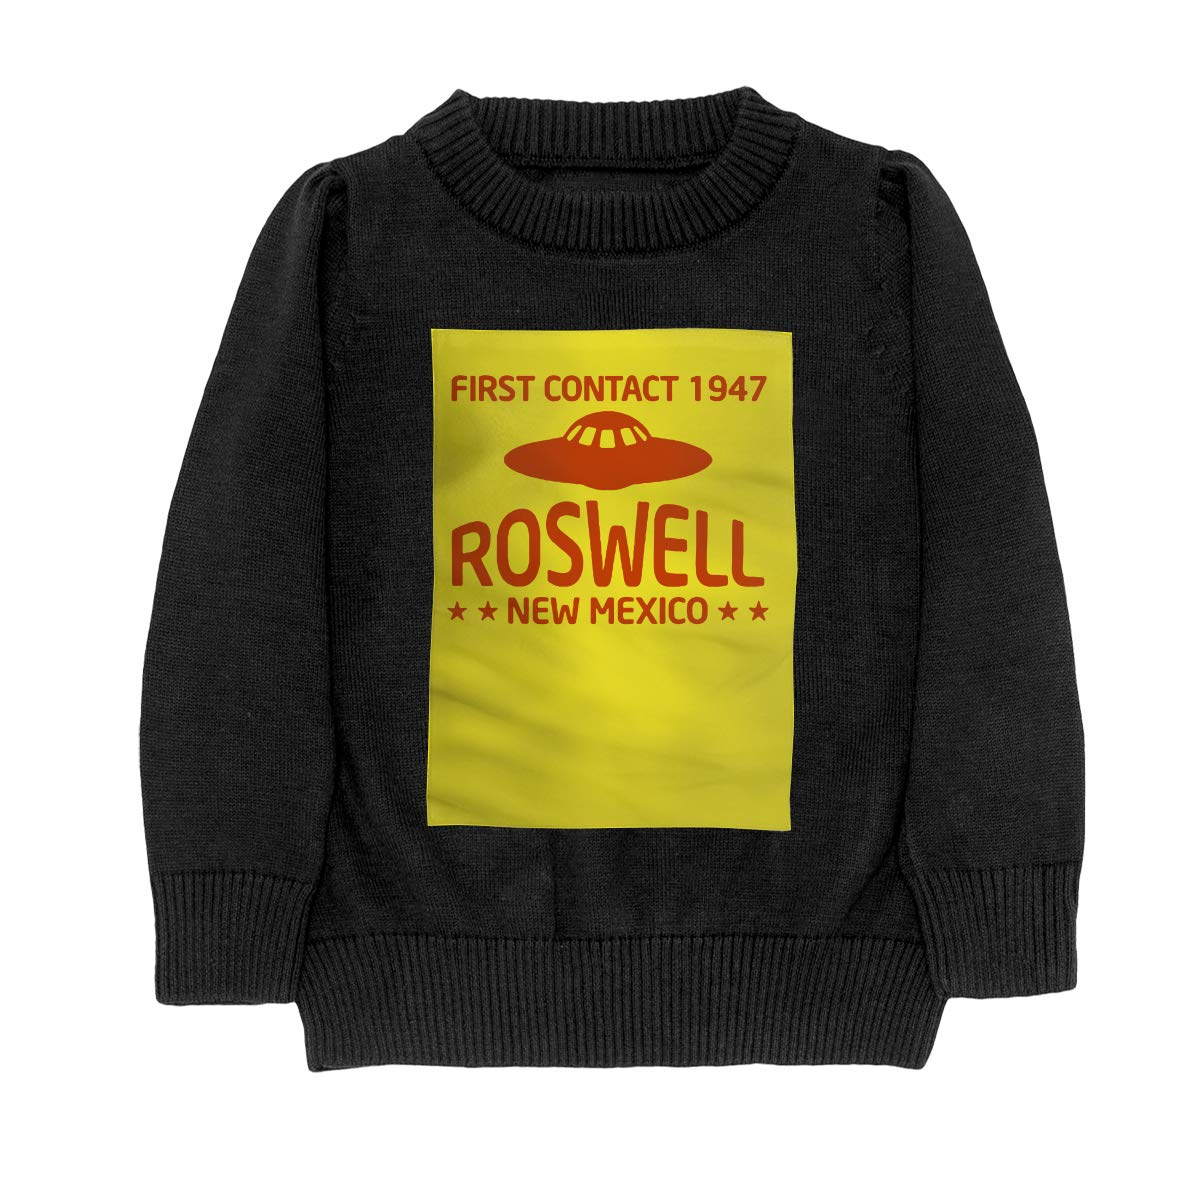 WWTBBJ-B First Contact 1947 Roswell New Mexico Casual Adolescent Boys Girls Unisex Sweater Keep Warm